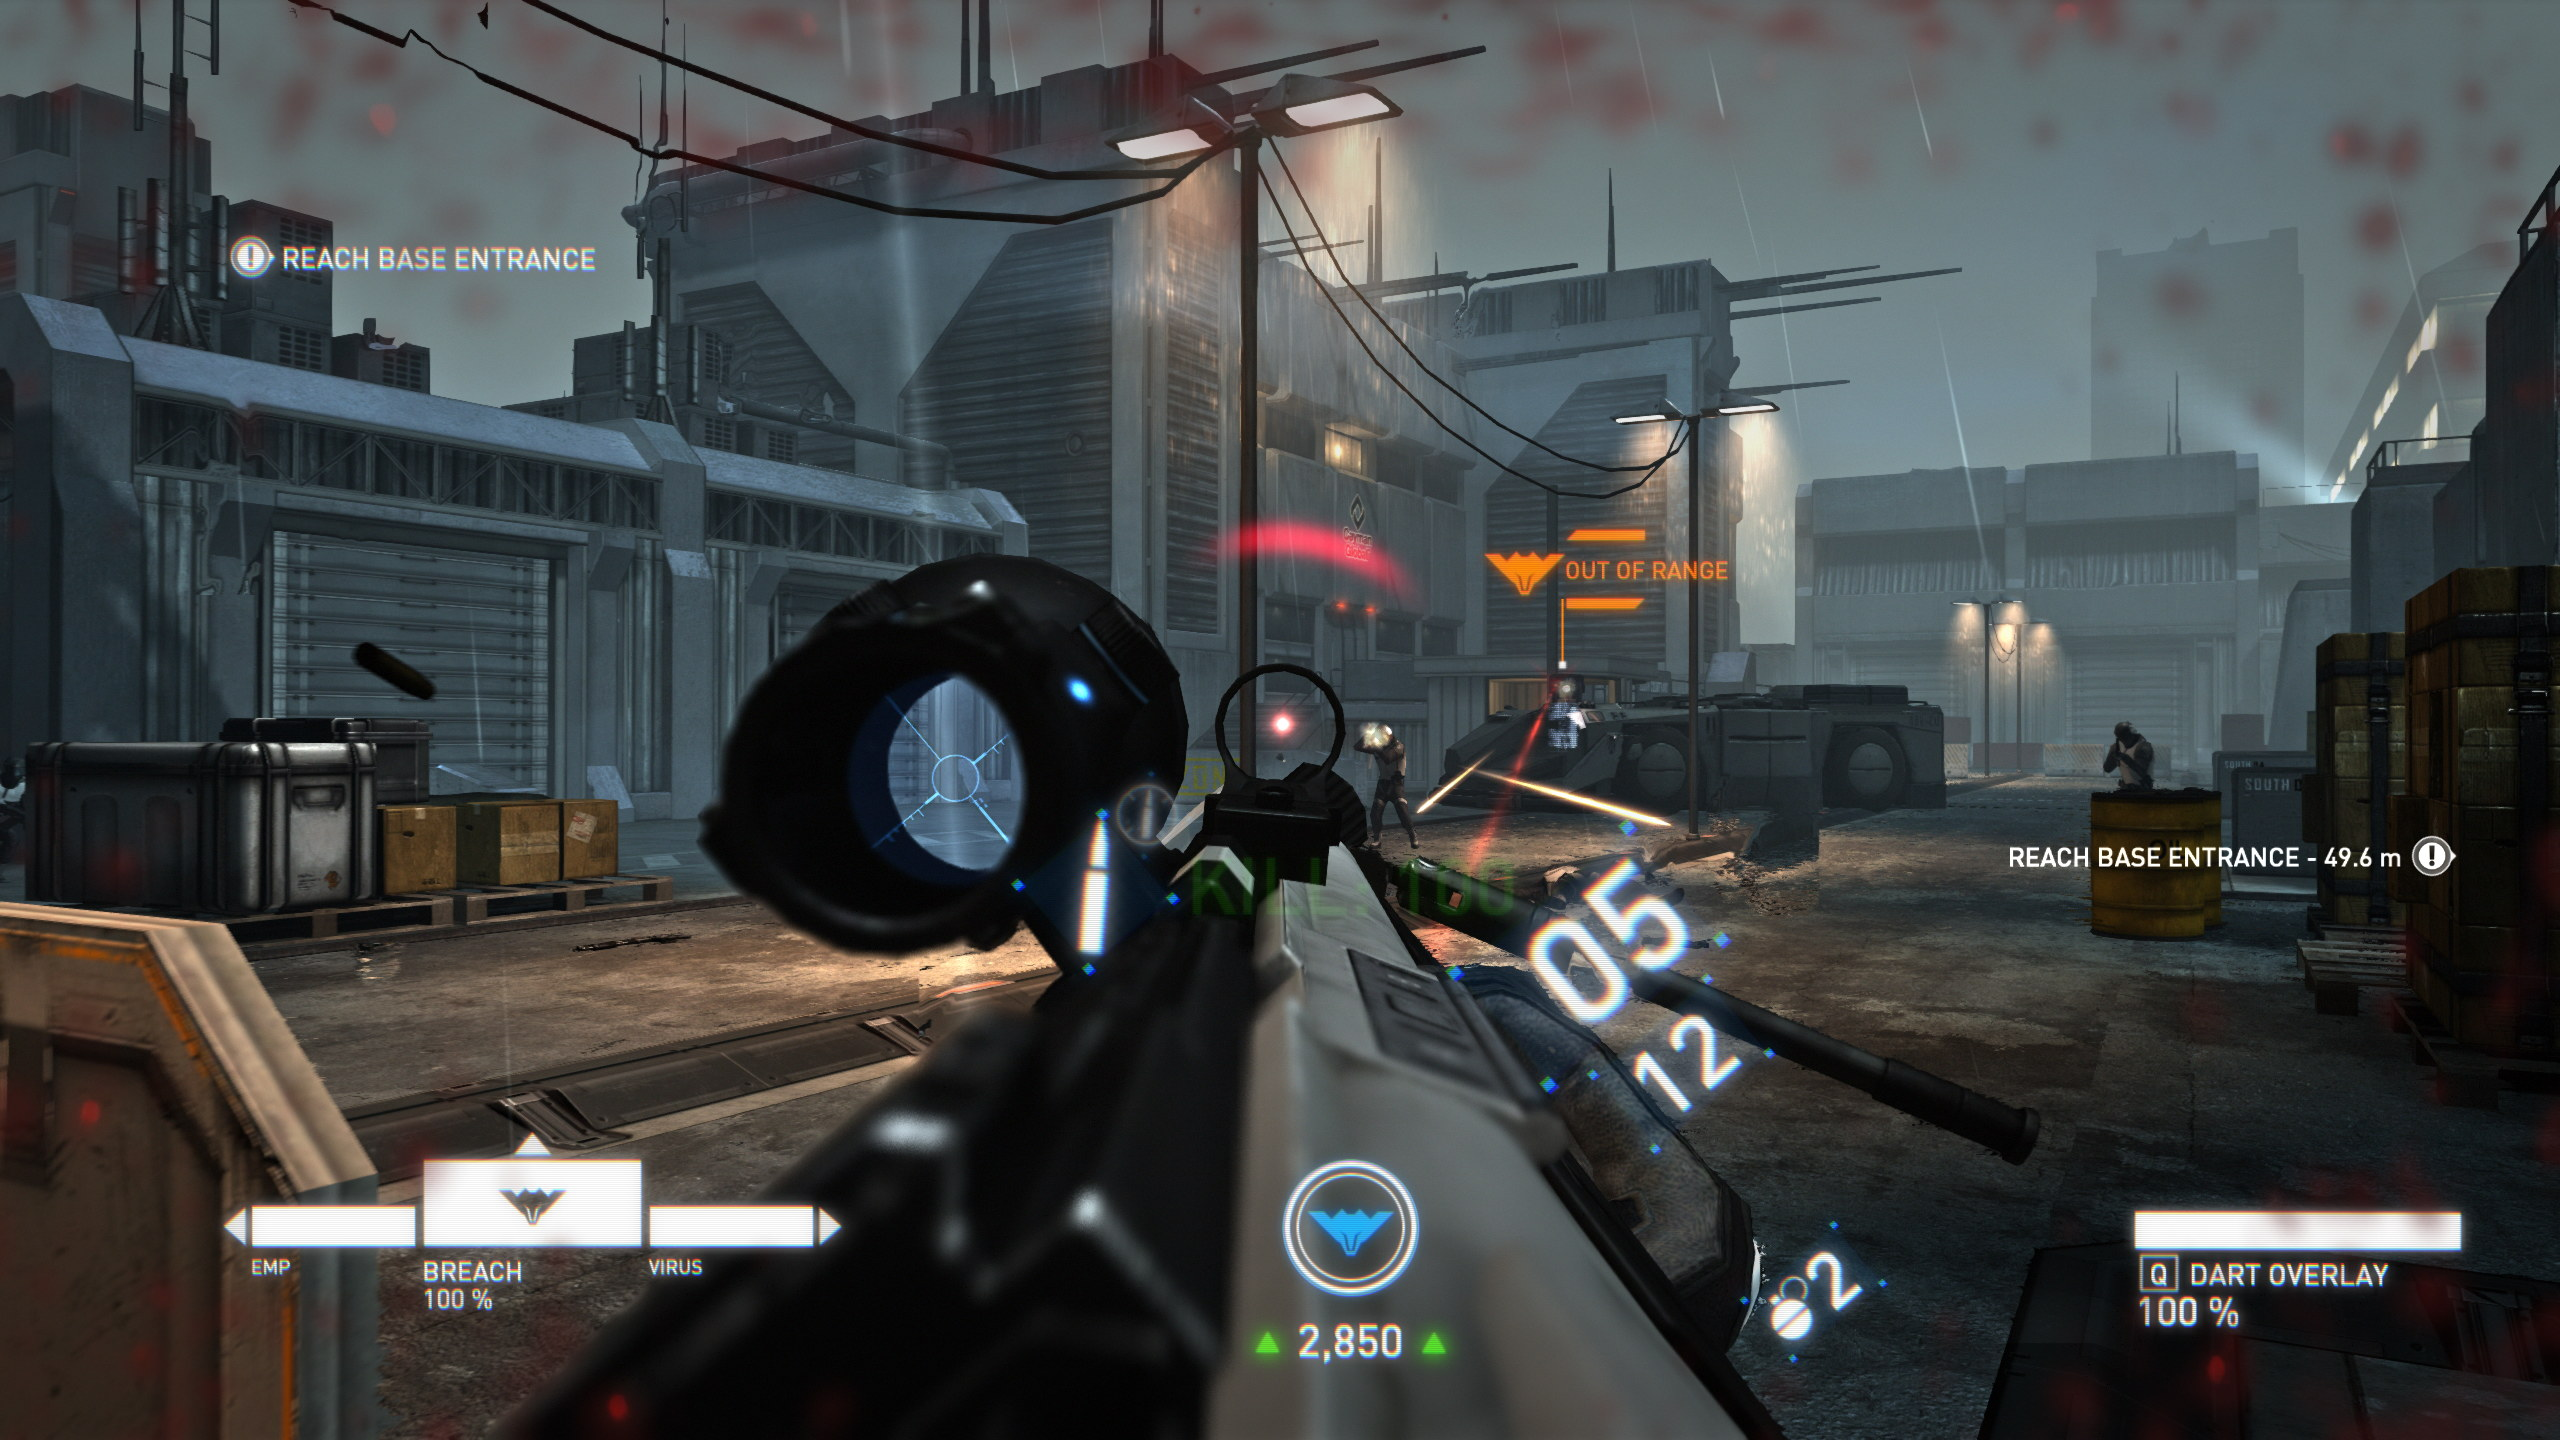 The player fires at an enemy down a grey, concrete street